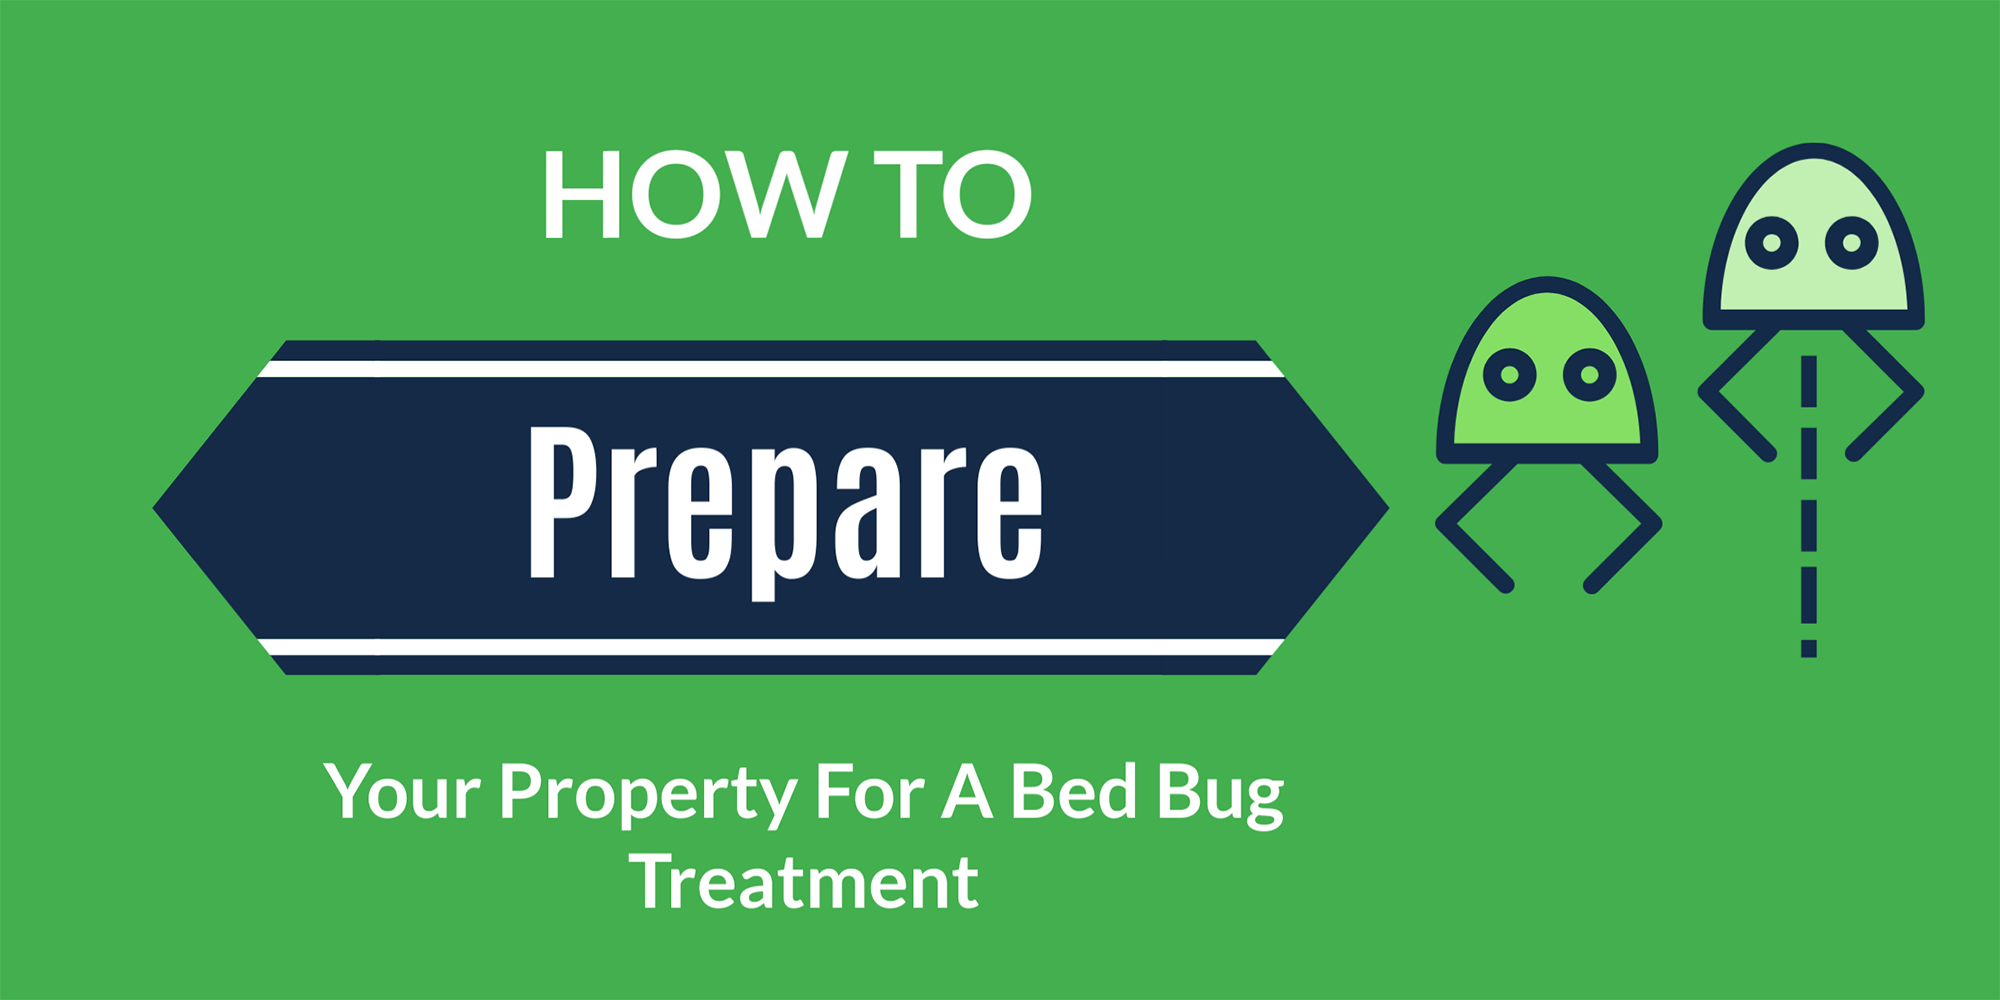 How To Prepare Your Property For A Bed Bug Treatment